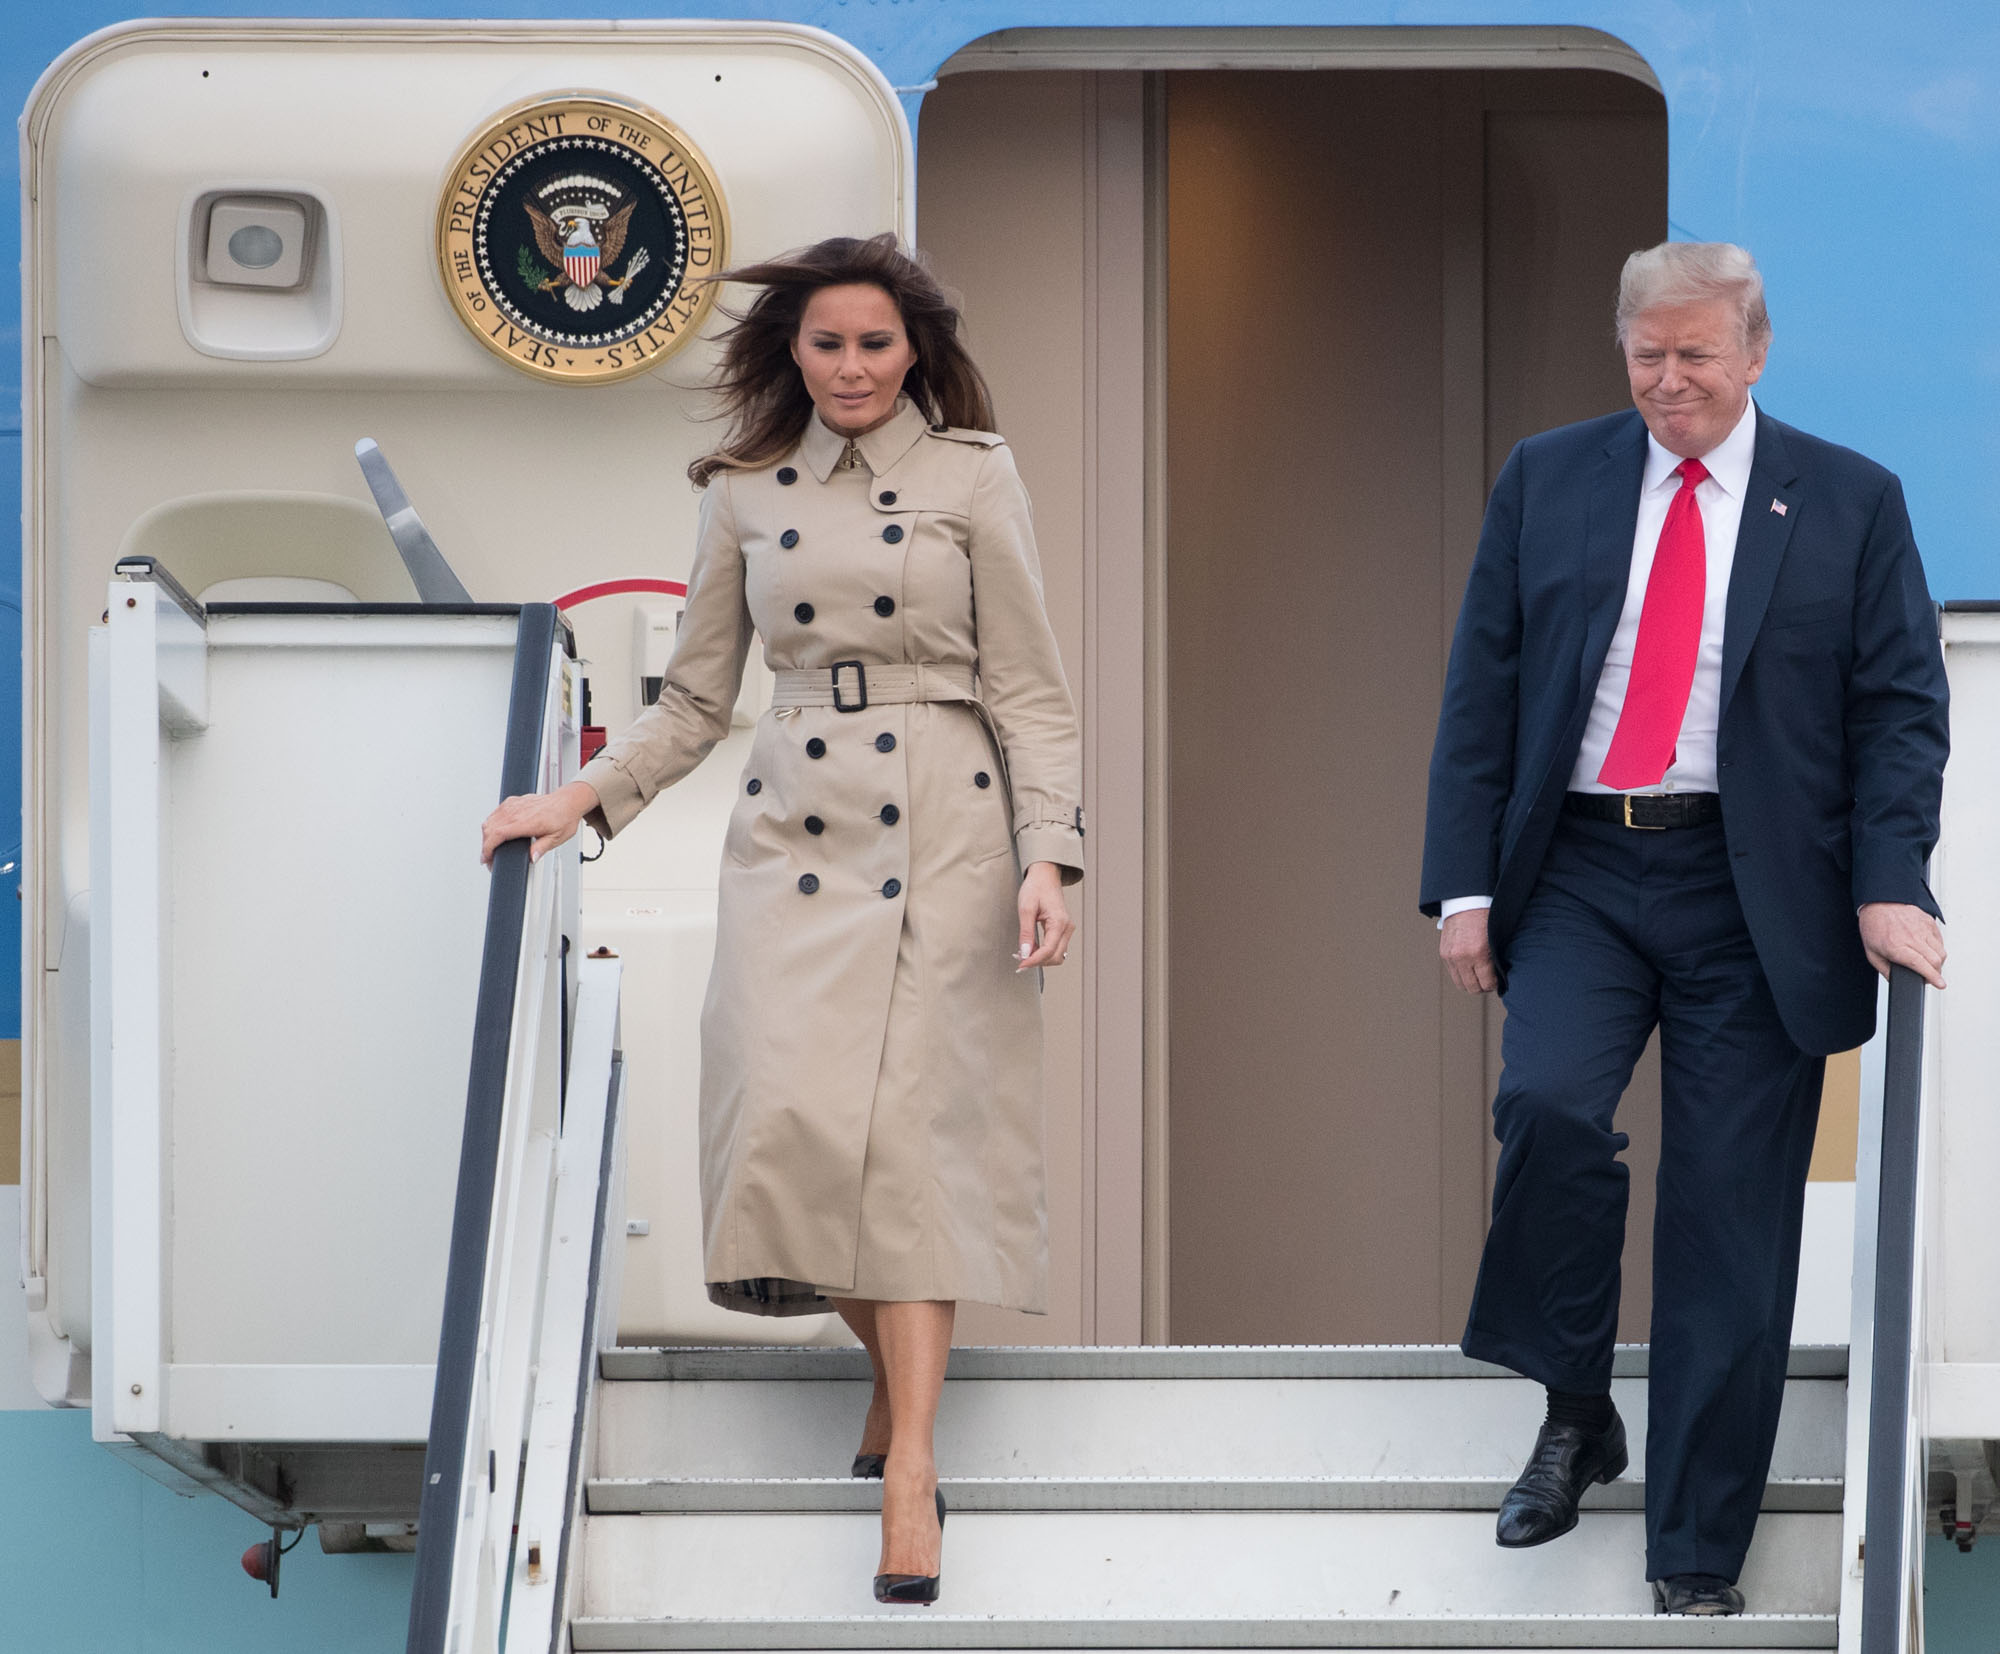 President Trump and Melania Trump disembark from Air Force One as they arrive in Brussels on Tuesday